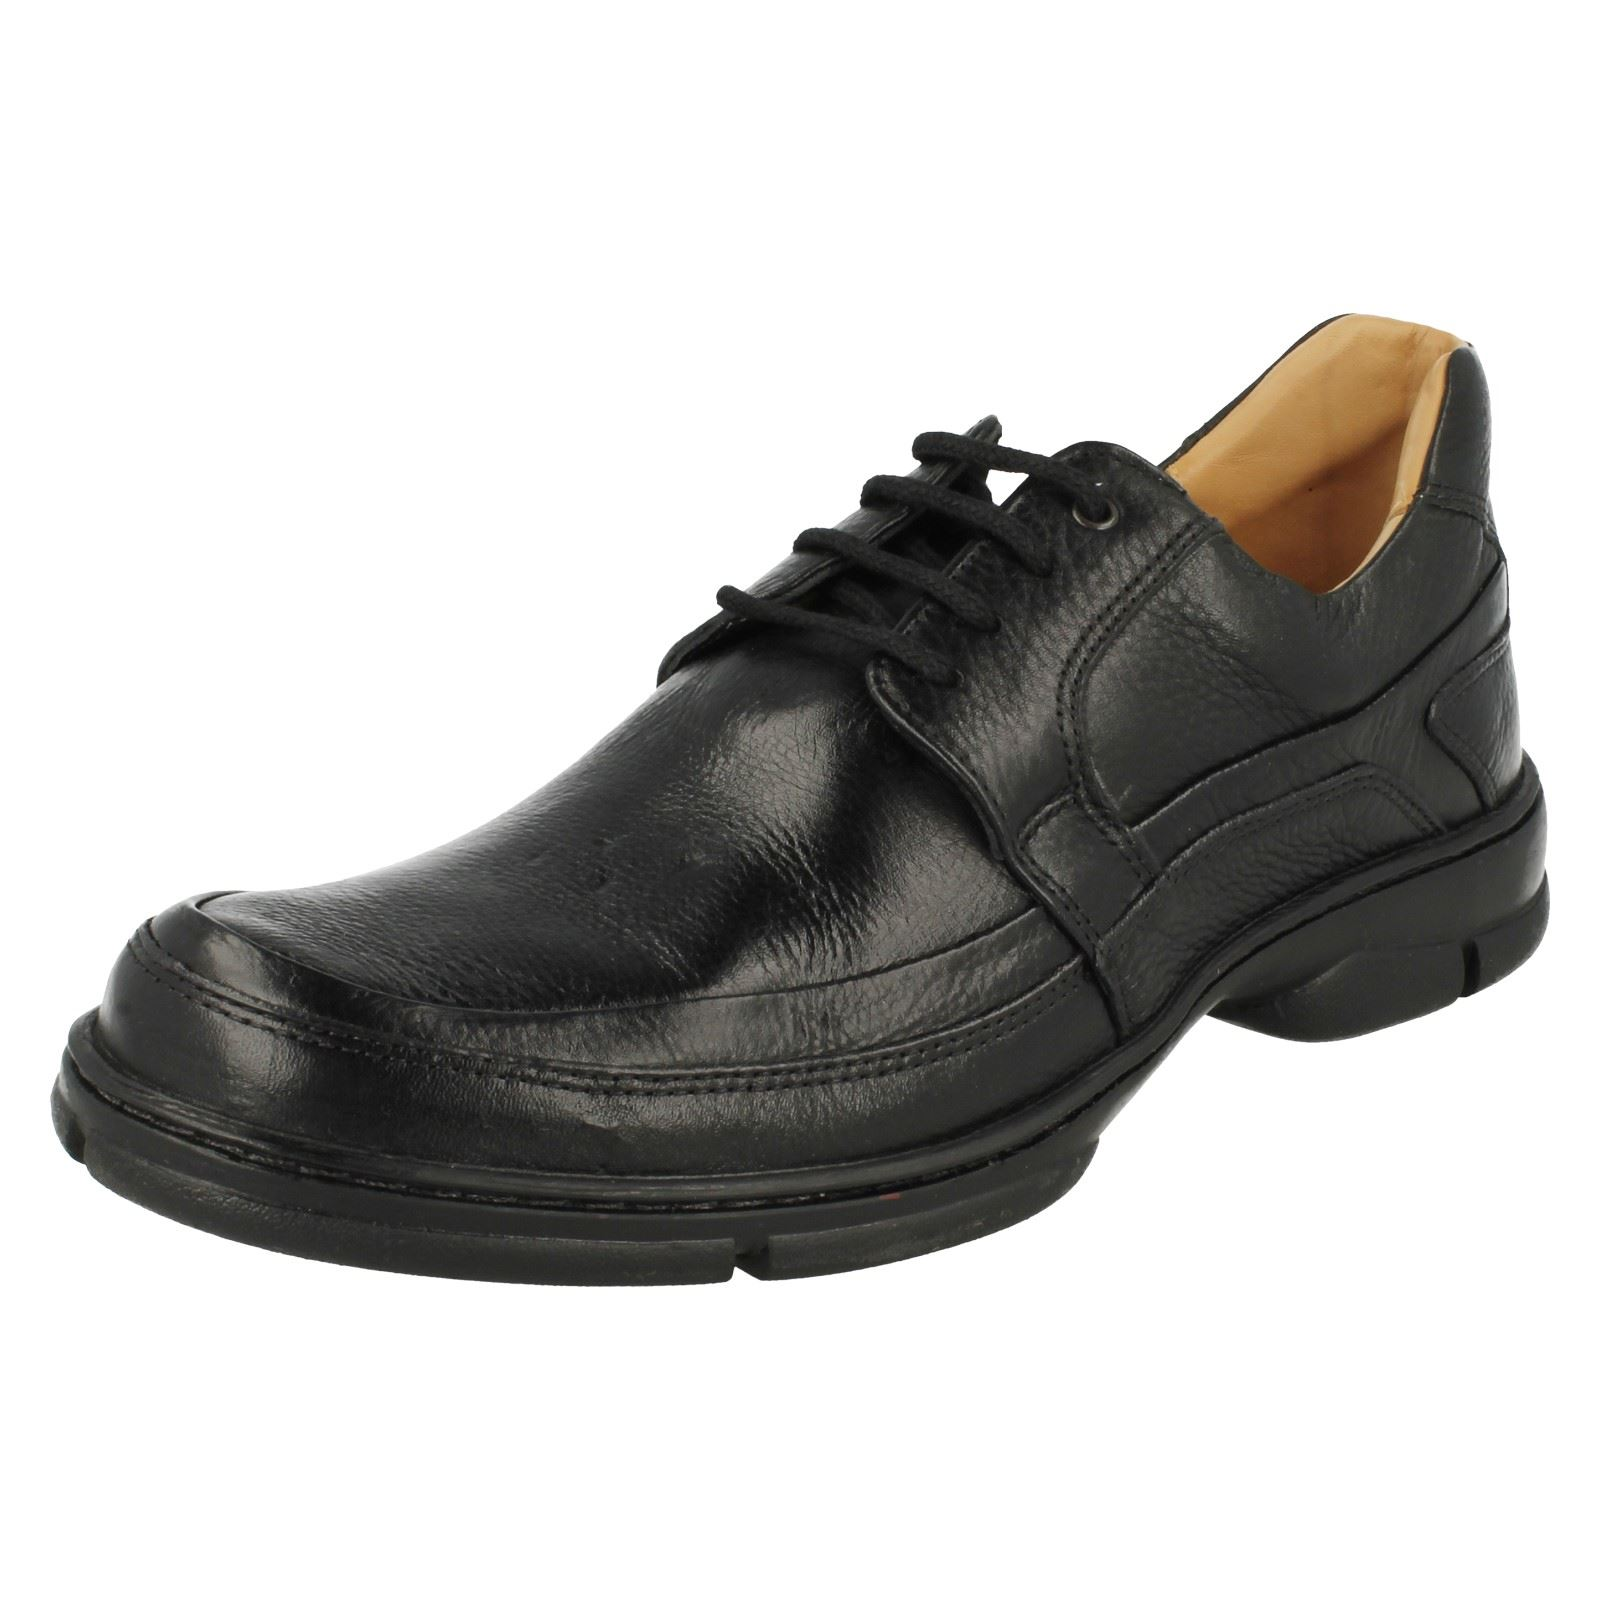 Mens Anatomic Smart Lace Up Schuhes Colinas